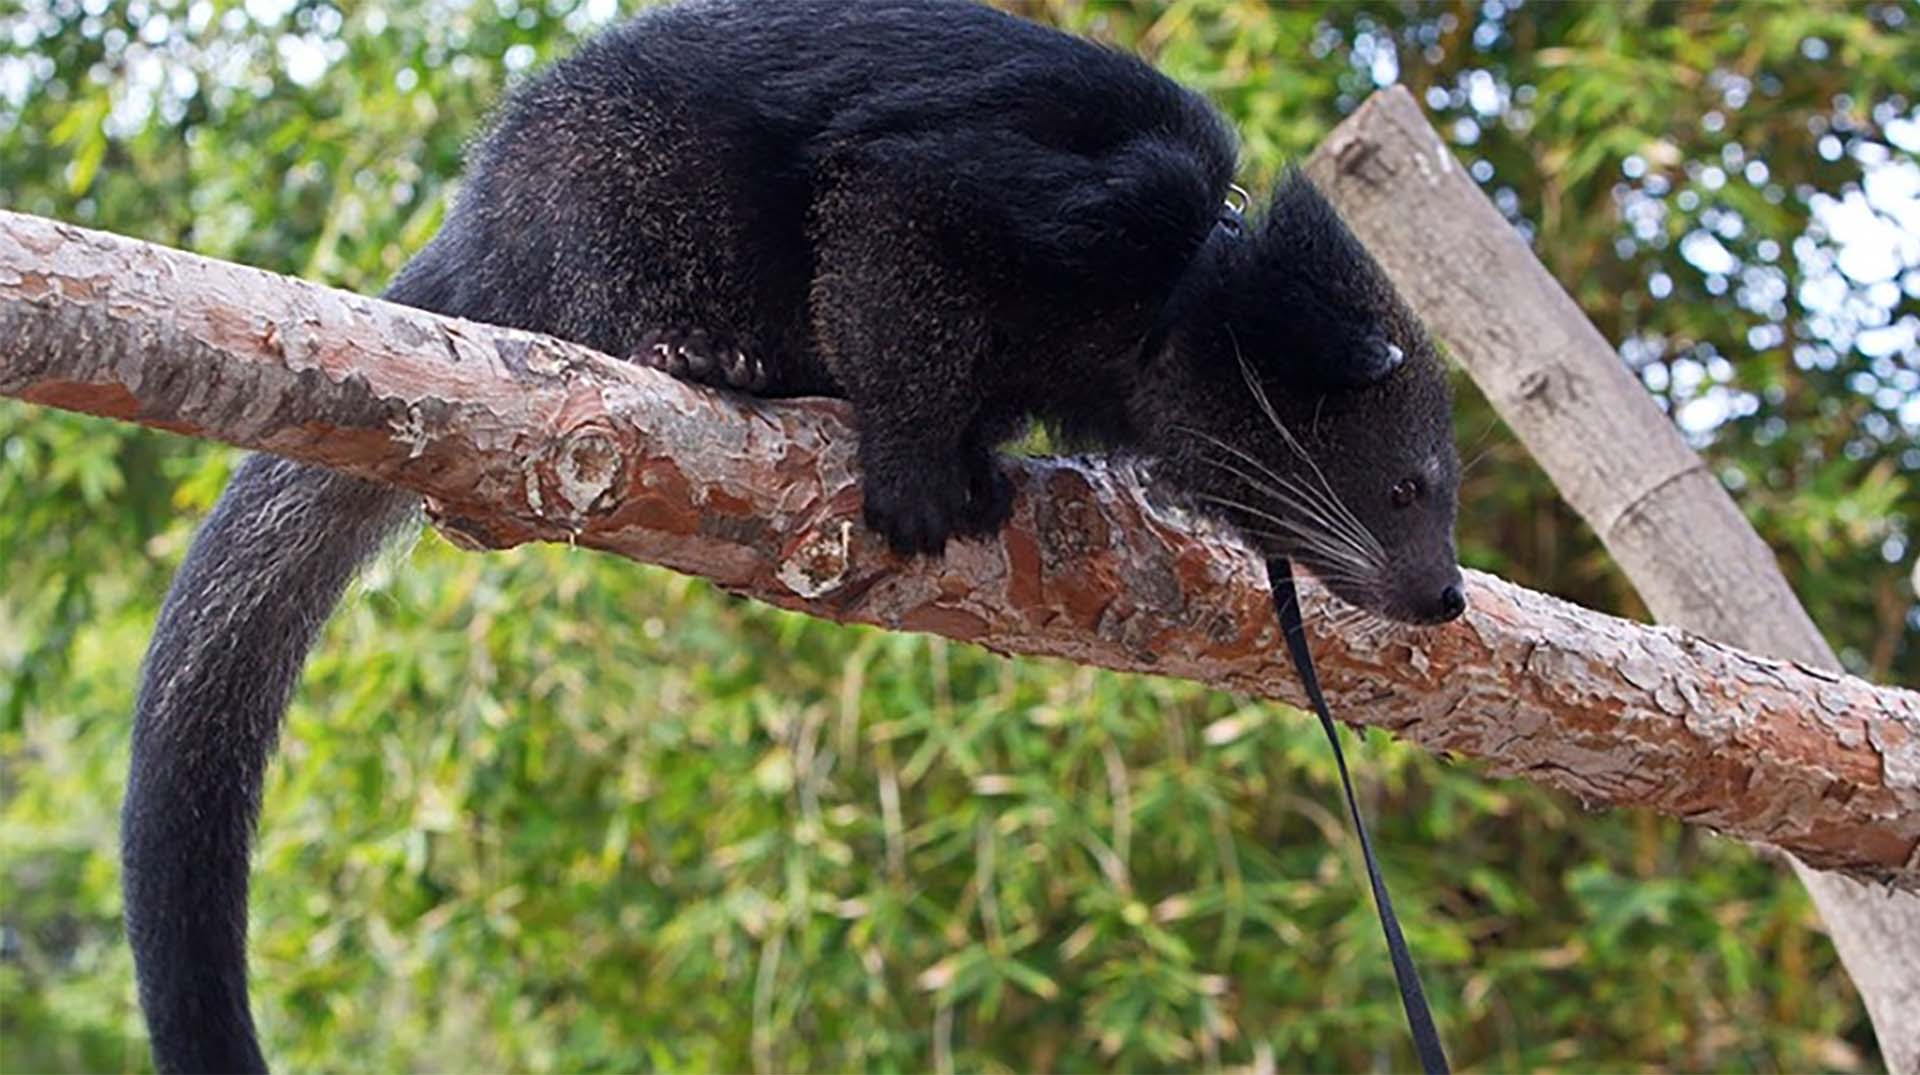 A close up of a Binturong in a tree.